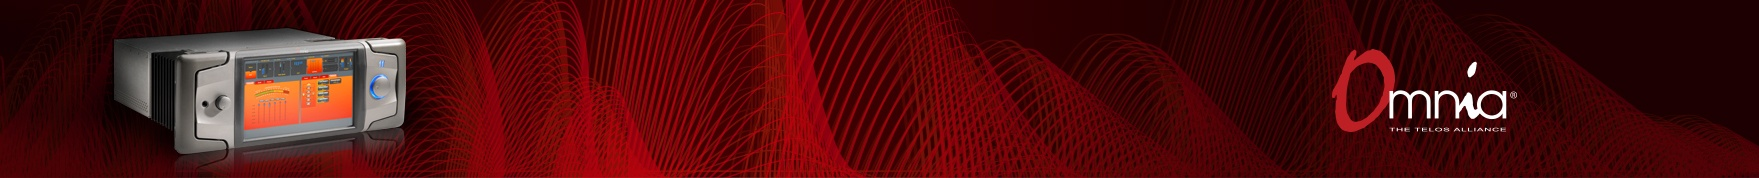 TA-Omnia11-v3.0-Header_Banner-v2-Red-Orange.jpg